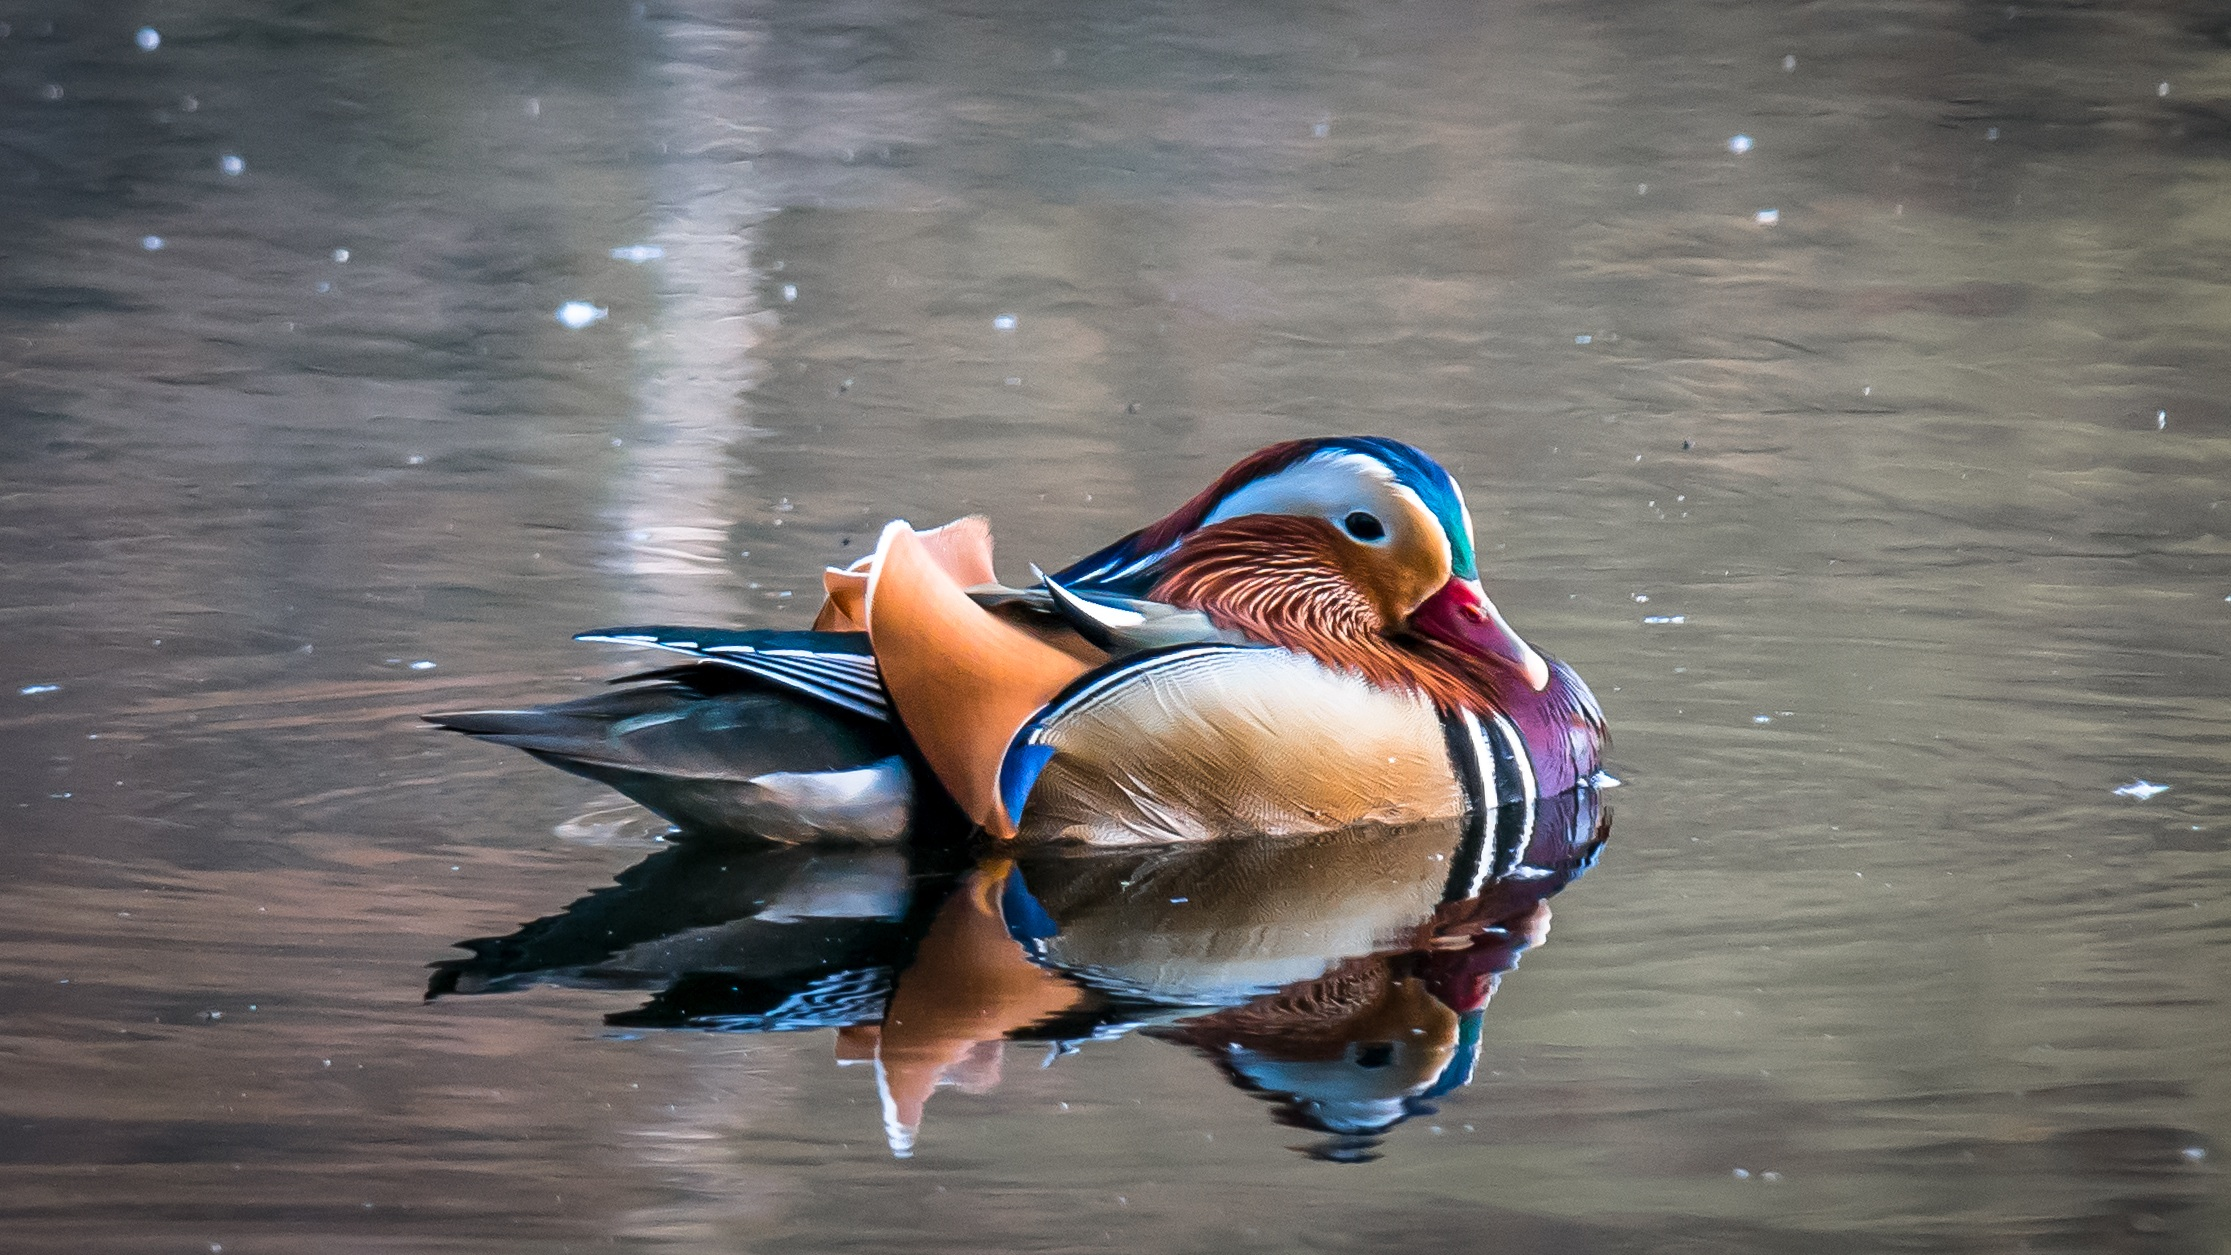 Cute Ducks In Water Wallpaper 1000 Great Reflection Photos 183 Pexels 183 Free Stock Photos